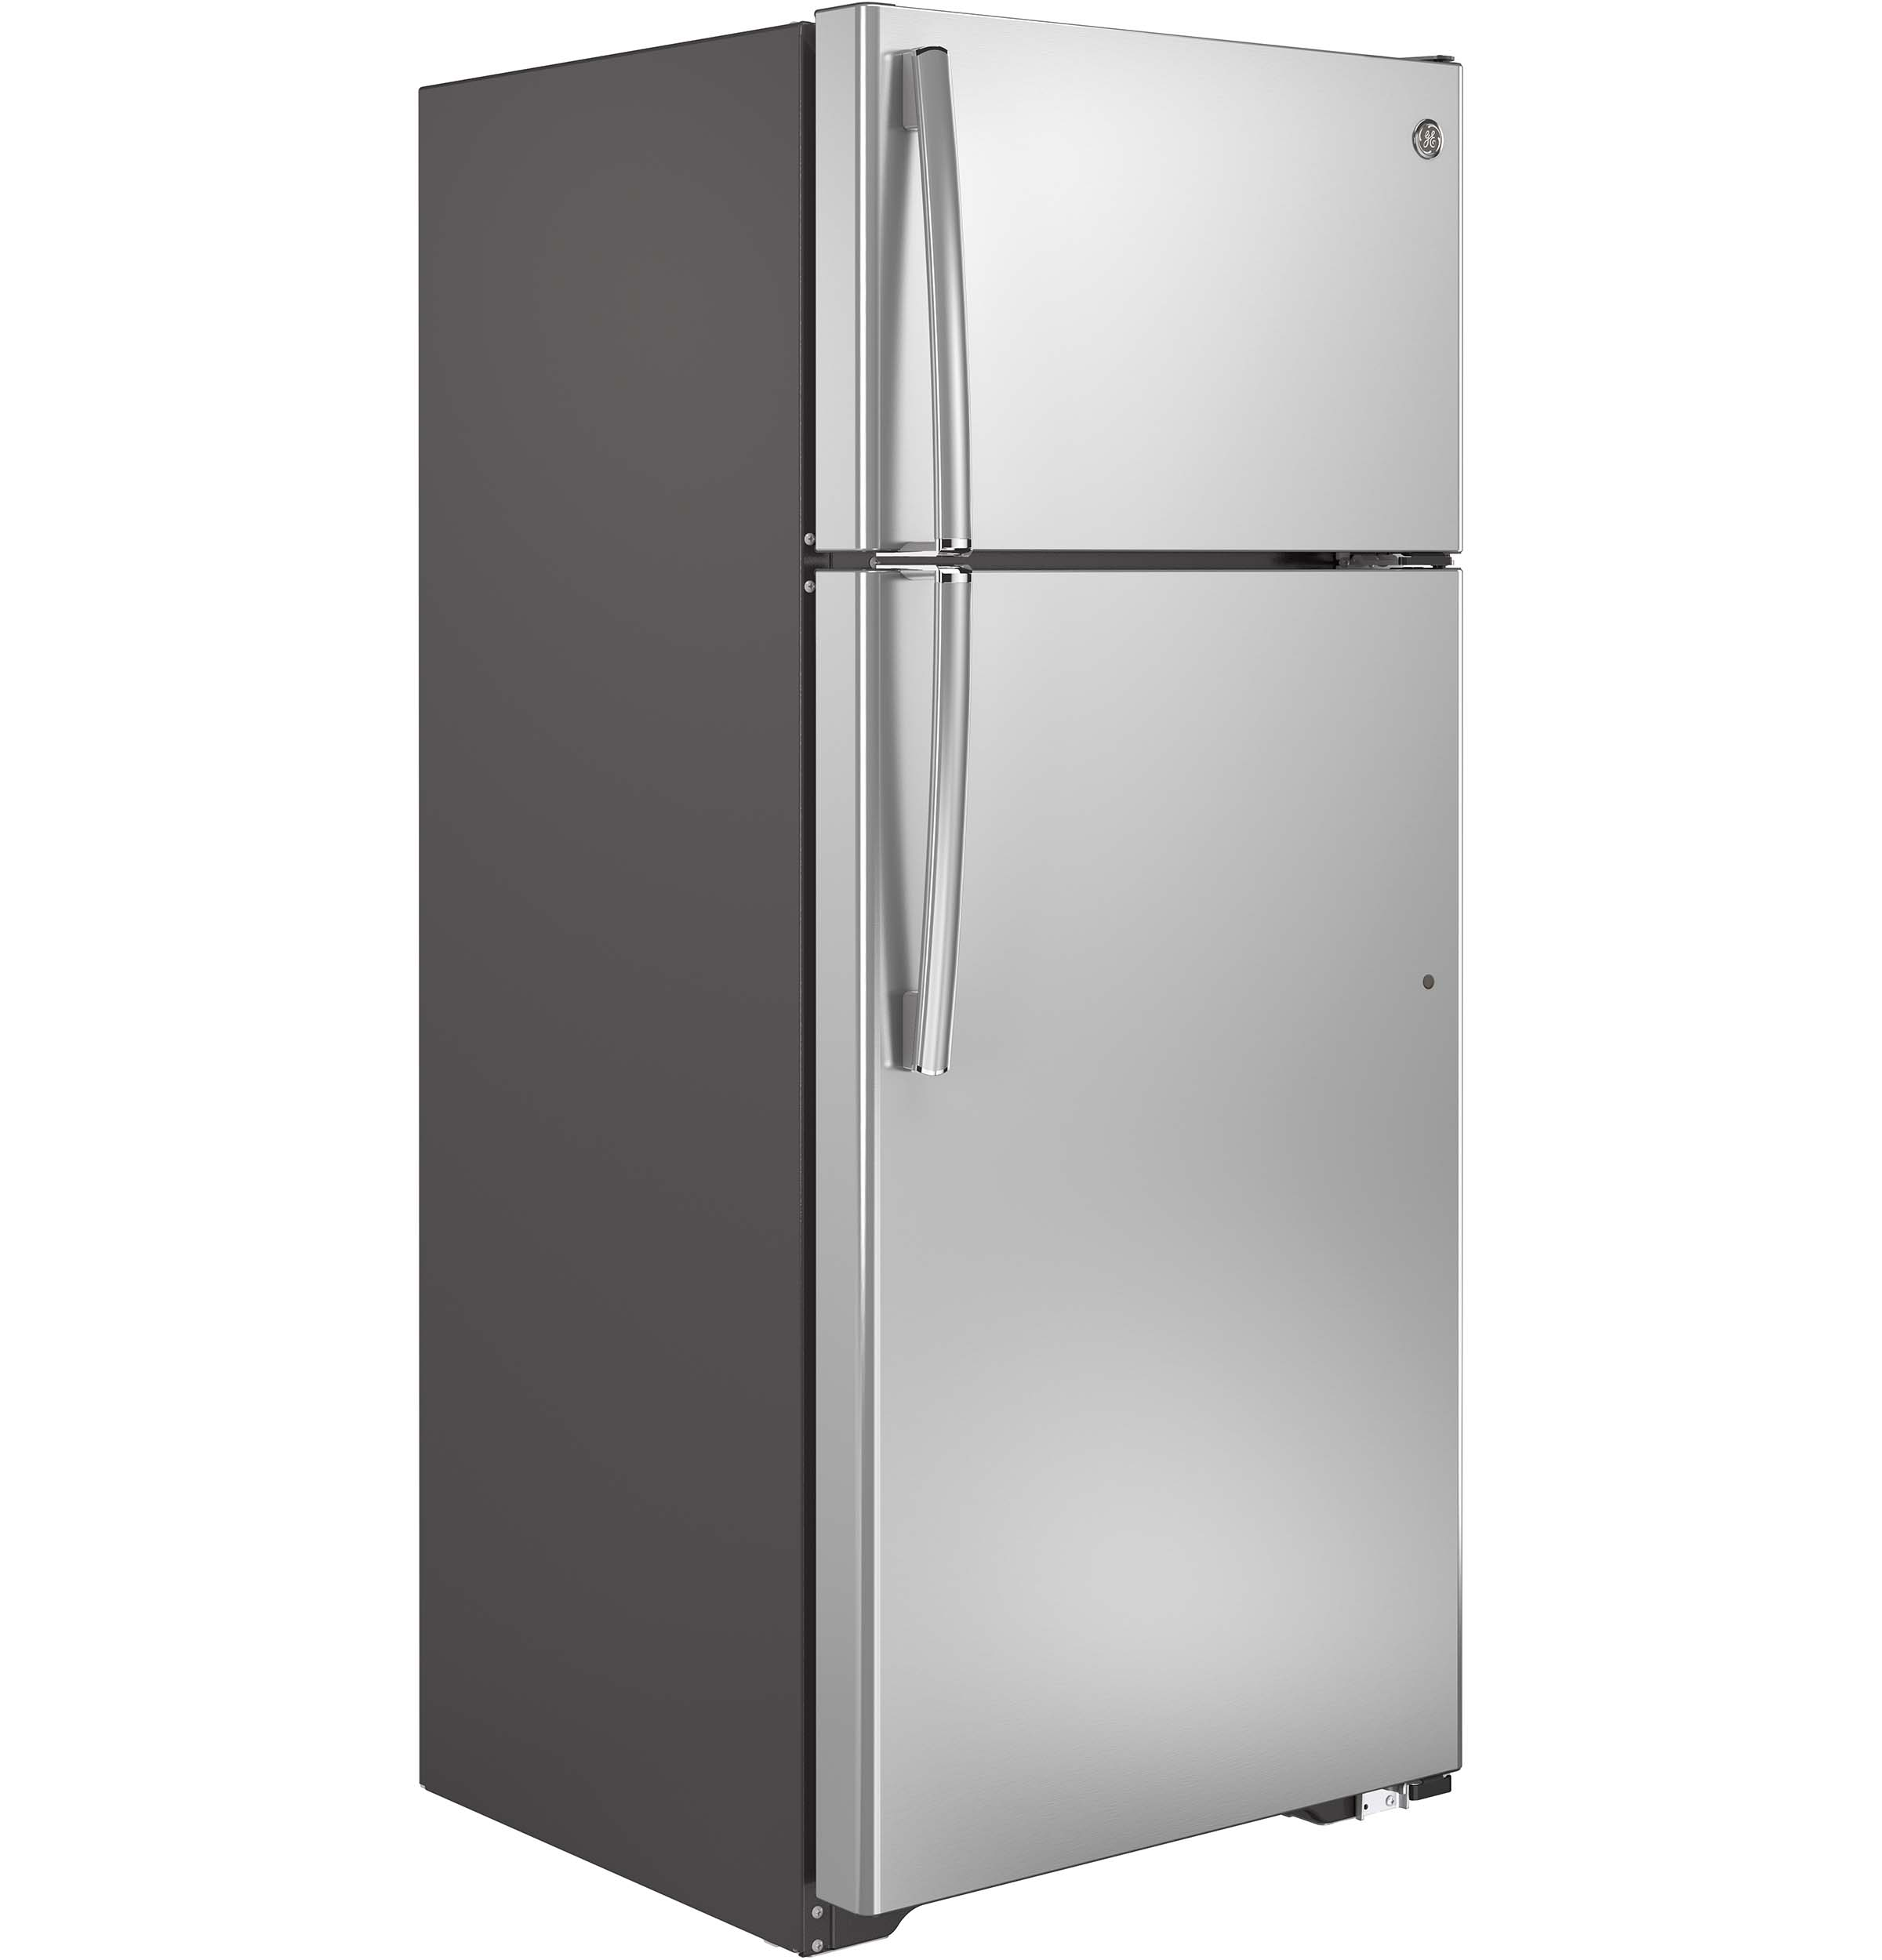 GE Appliances GTS18GSHSS 17.5 cu. ft. Top-Freezer Refrigerator- Stainless Steel